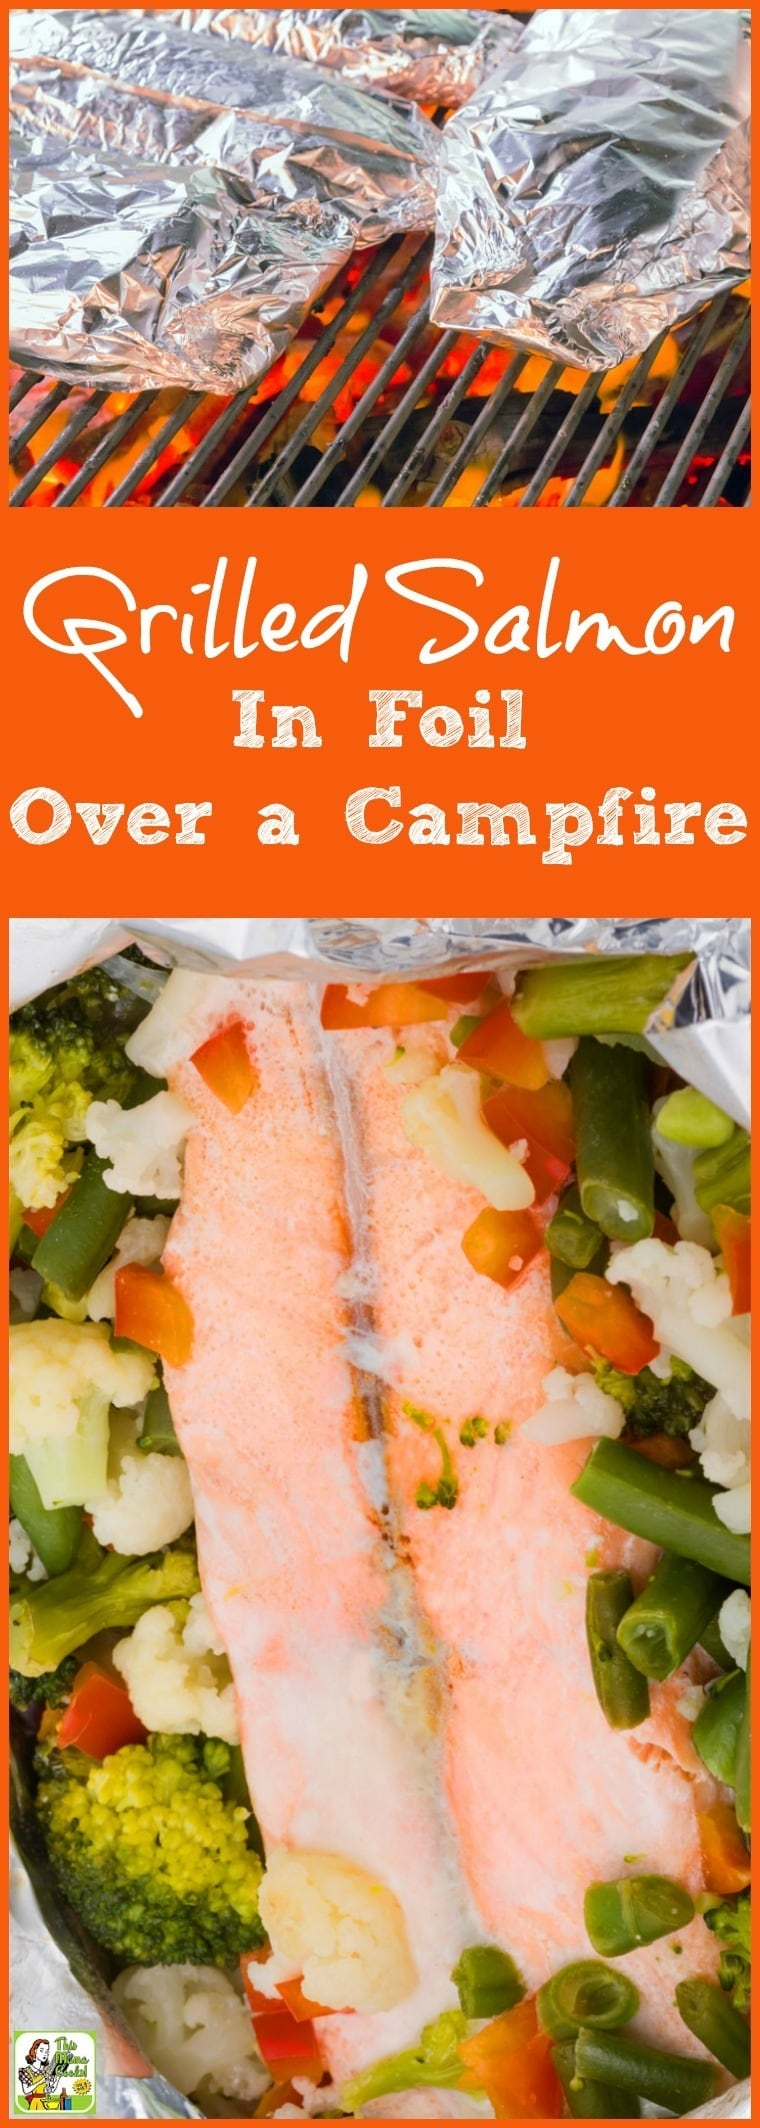 It's so easy to make this Grilled Salmon in Foil Over a Campfire when you're camping or on the grill during a backyard cookout party. Each packet contains enough fish and vegetables for two people. Not only is this fish grilling recipe easy but it's healthy, too!